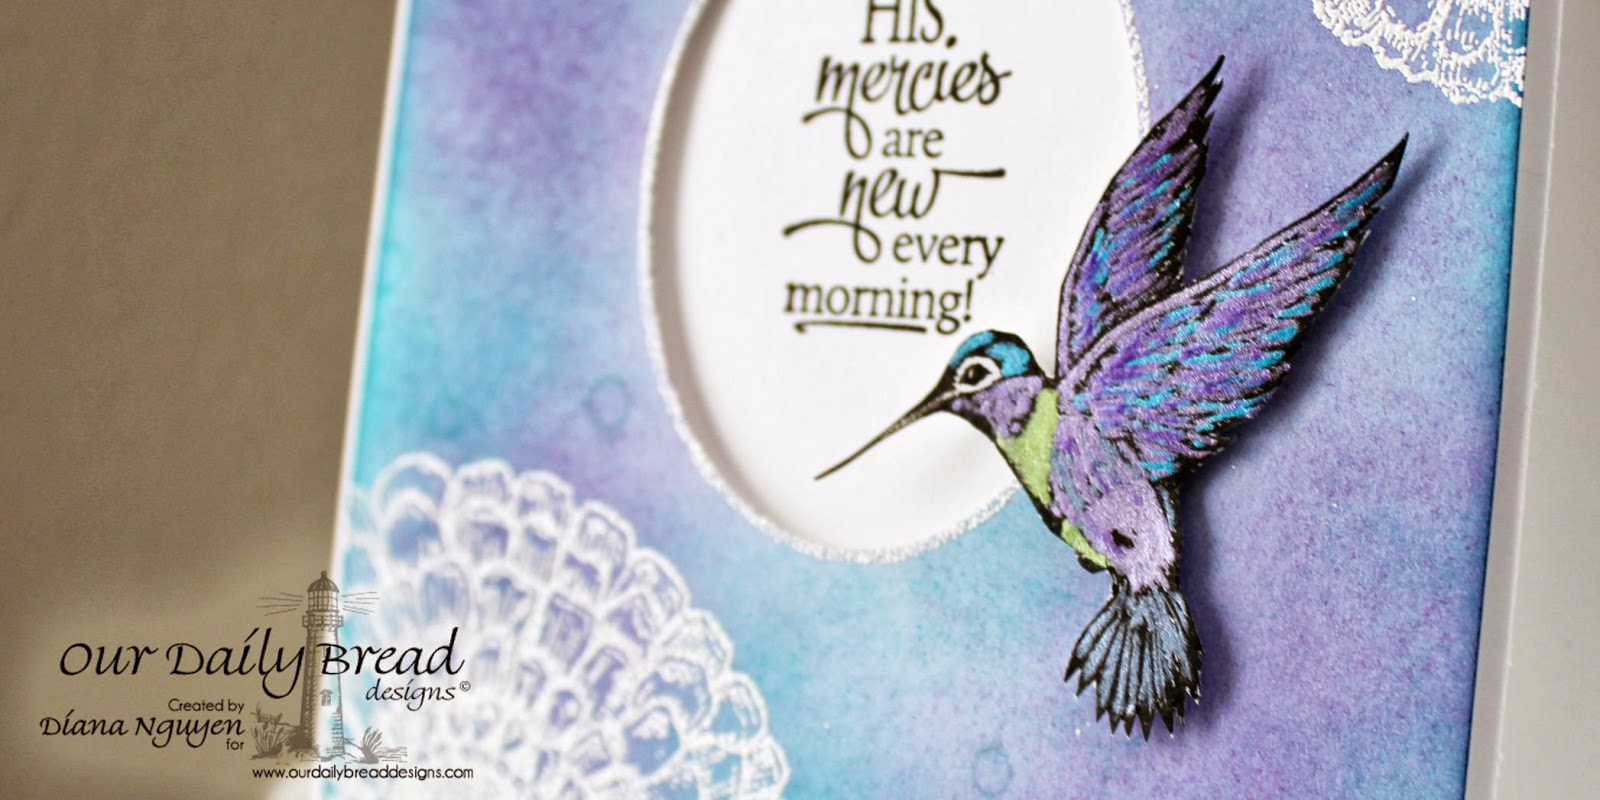 Diana Nguyen, Our Daily Bread Designs, hummingbird, scripture, handmade card, card